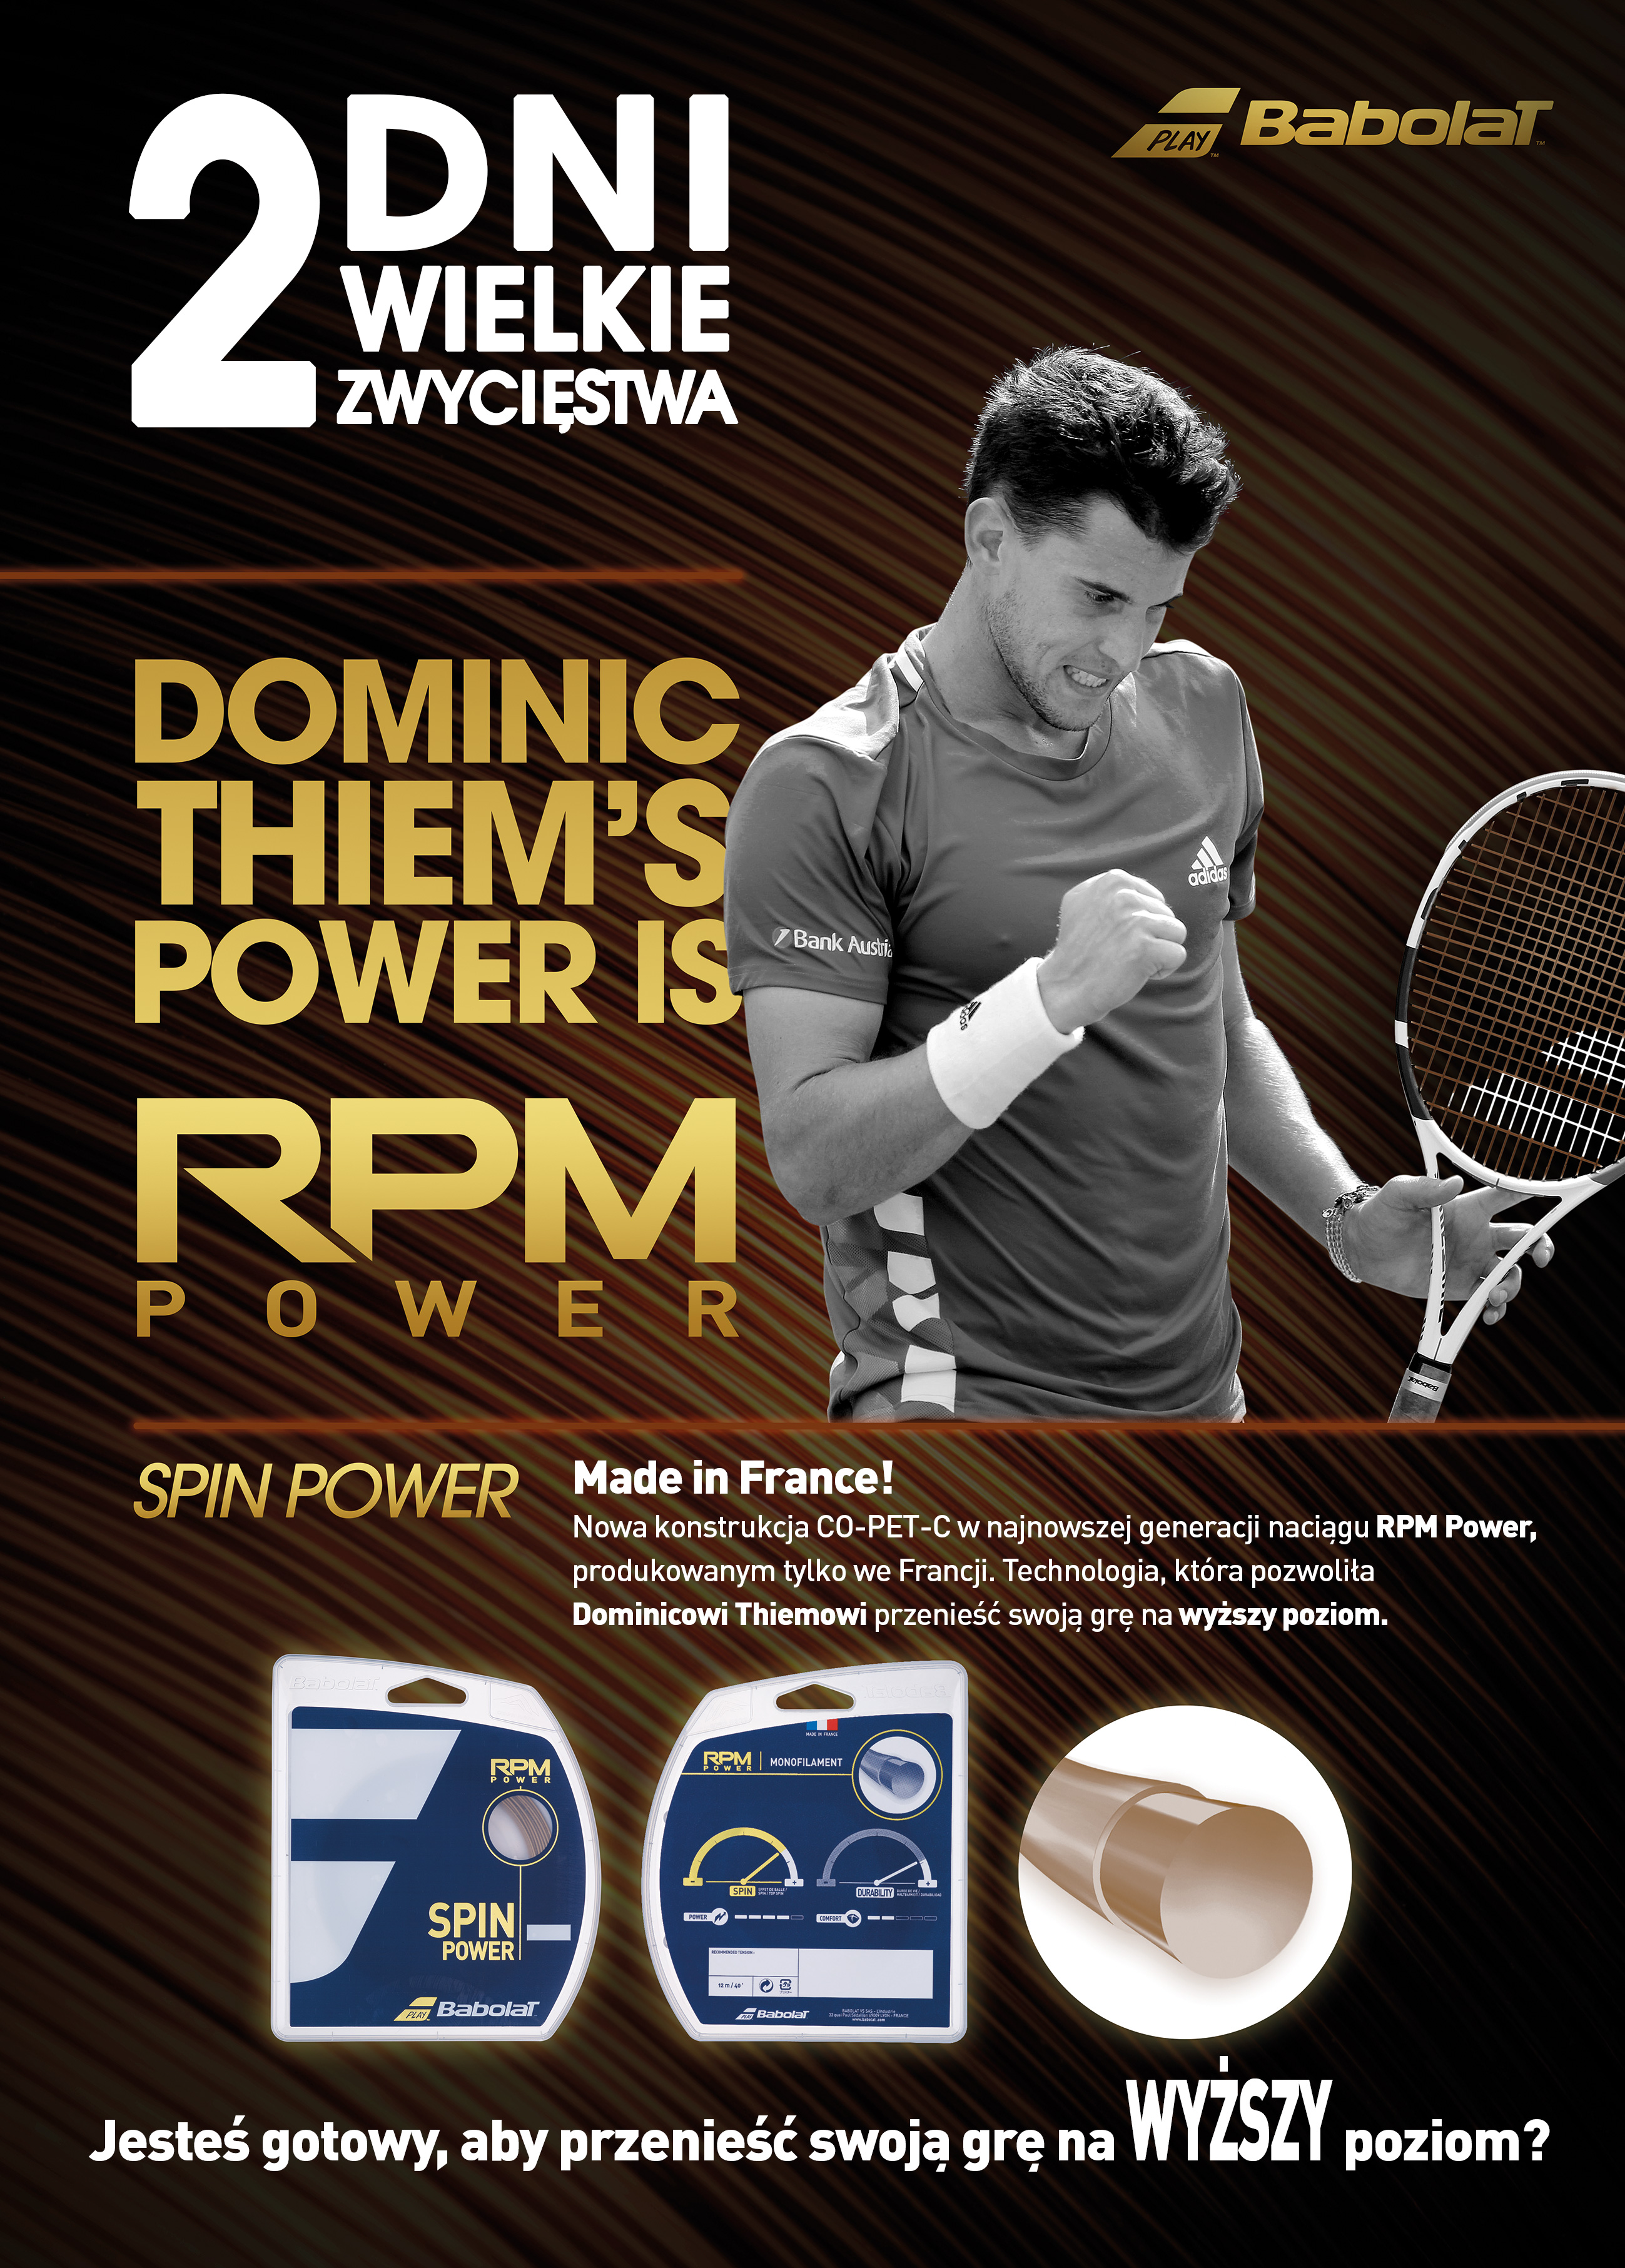 promocja pure strike i rpm power